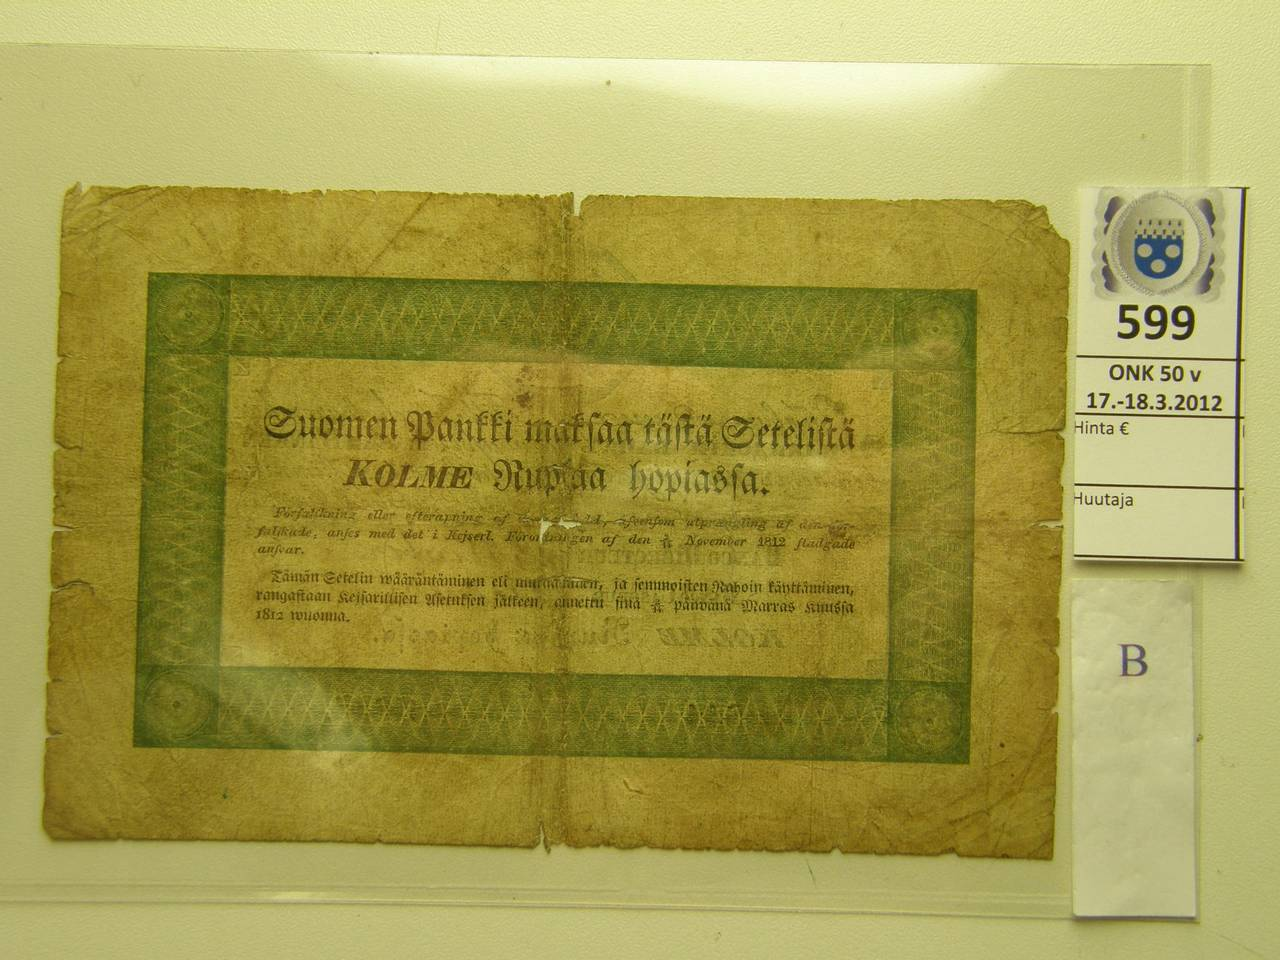 k-0599-b.jpg - Kohde 599 (kuva 2/2), lähtöhinta: 15000 € 3 ruplaa 1841 Pick#A29 SNY 51 11844 Winter-Hjelm, vas yläkulmapuutos, repä, reikiä, rosoreunat, hauras. Toinen tunnetuista! Russian administration, 3 rubles 1841, Pick#A29. Very rare, only two pieces known! Condition good-fair, a small piece missing from left upper corner, kunto: 2